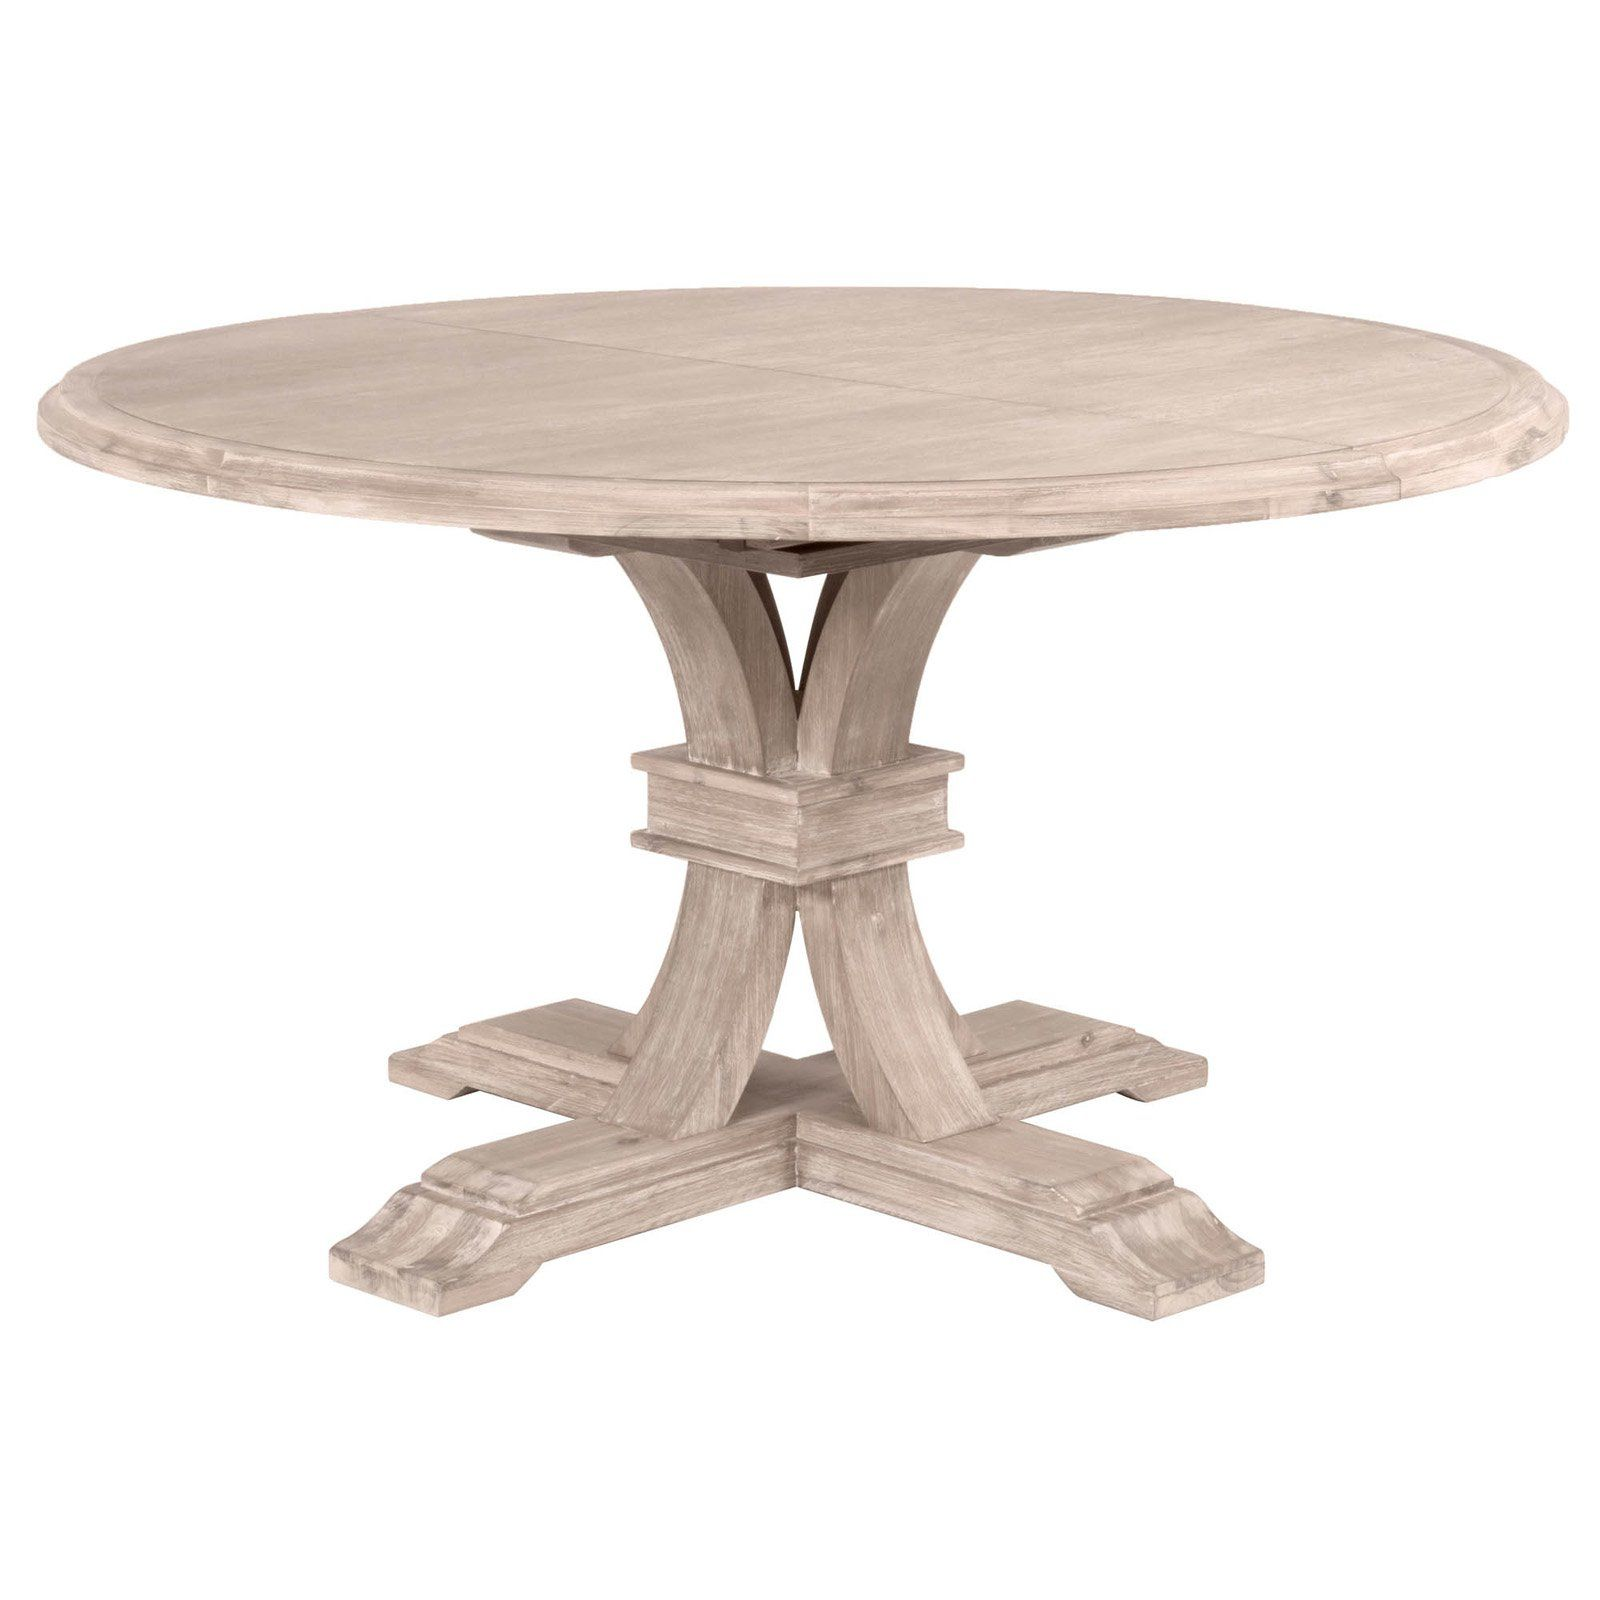 Orient Express Furniture Devon Dining Table Extension Dining